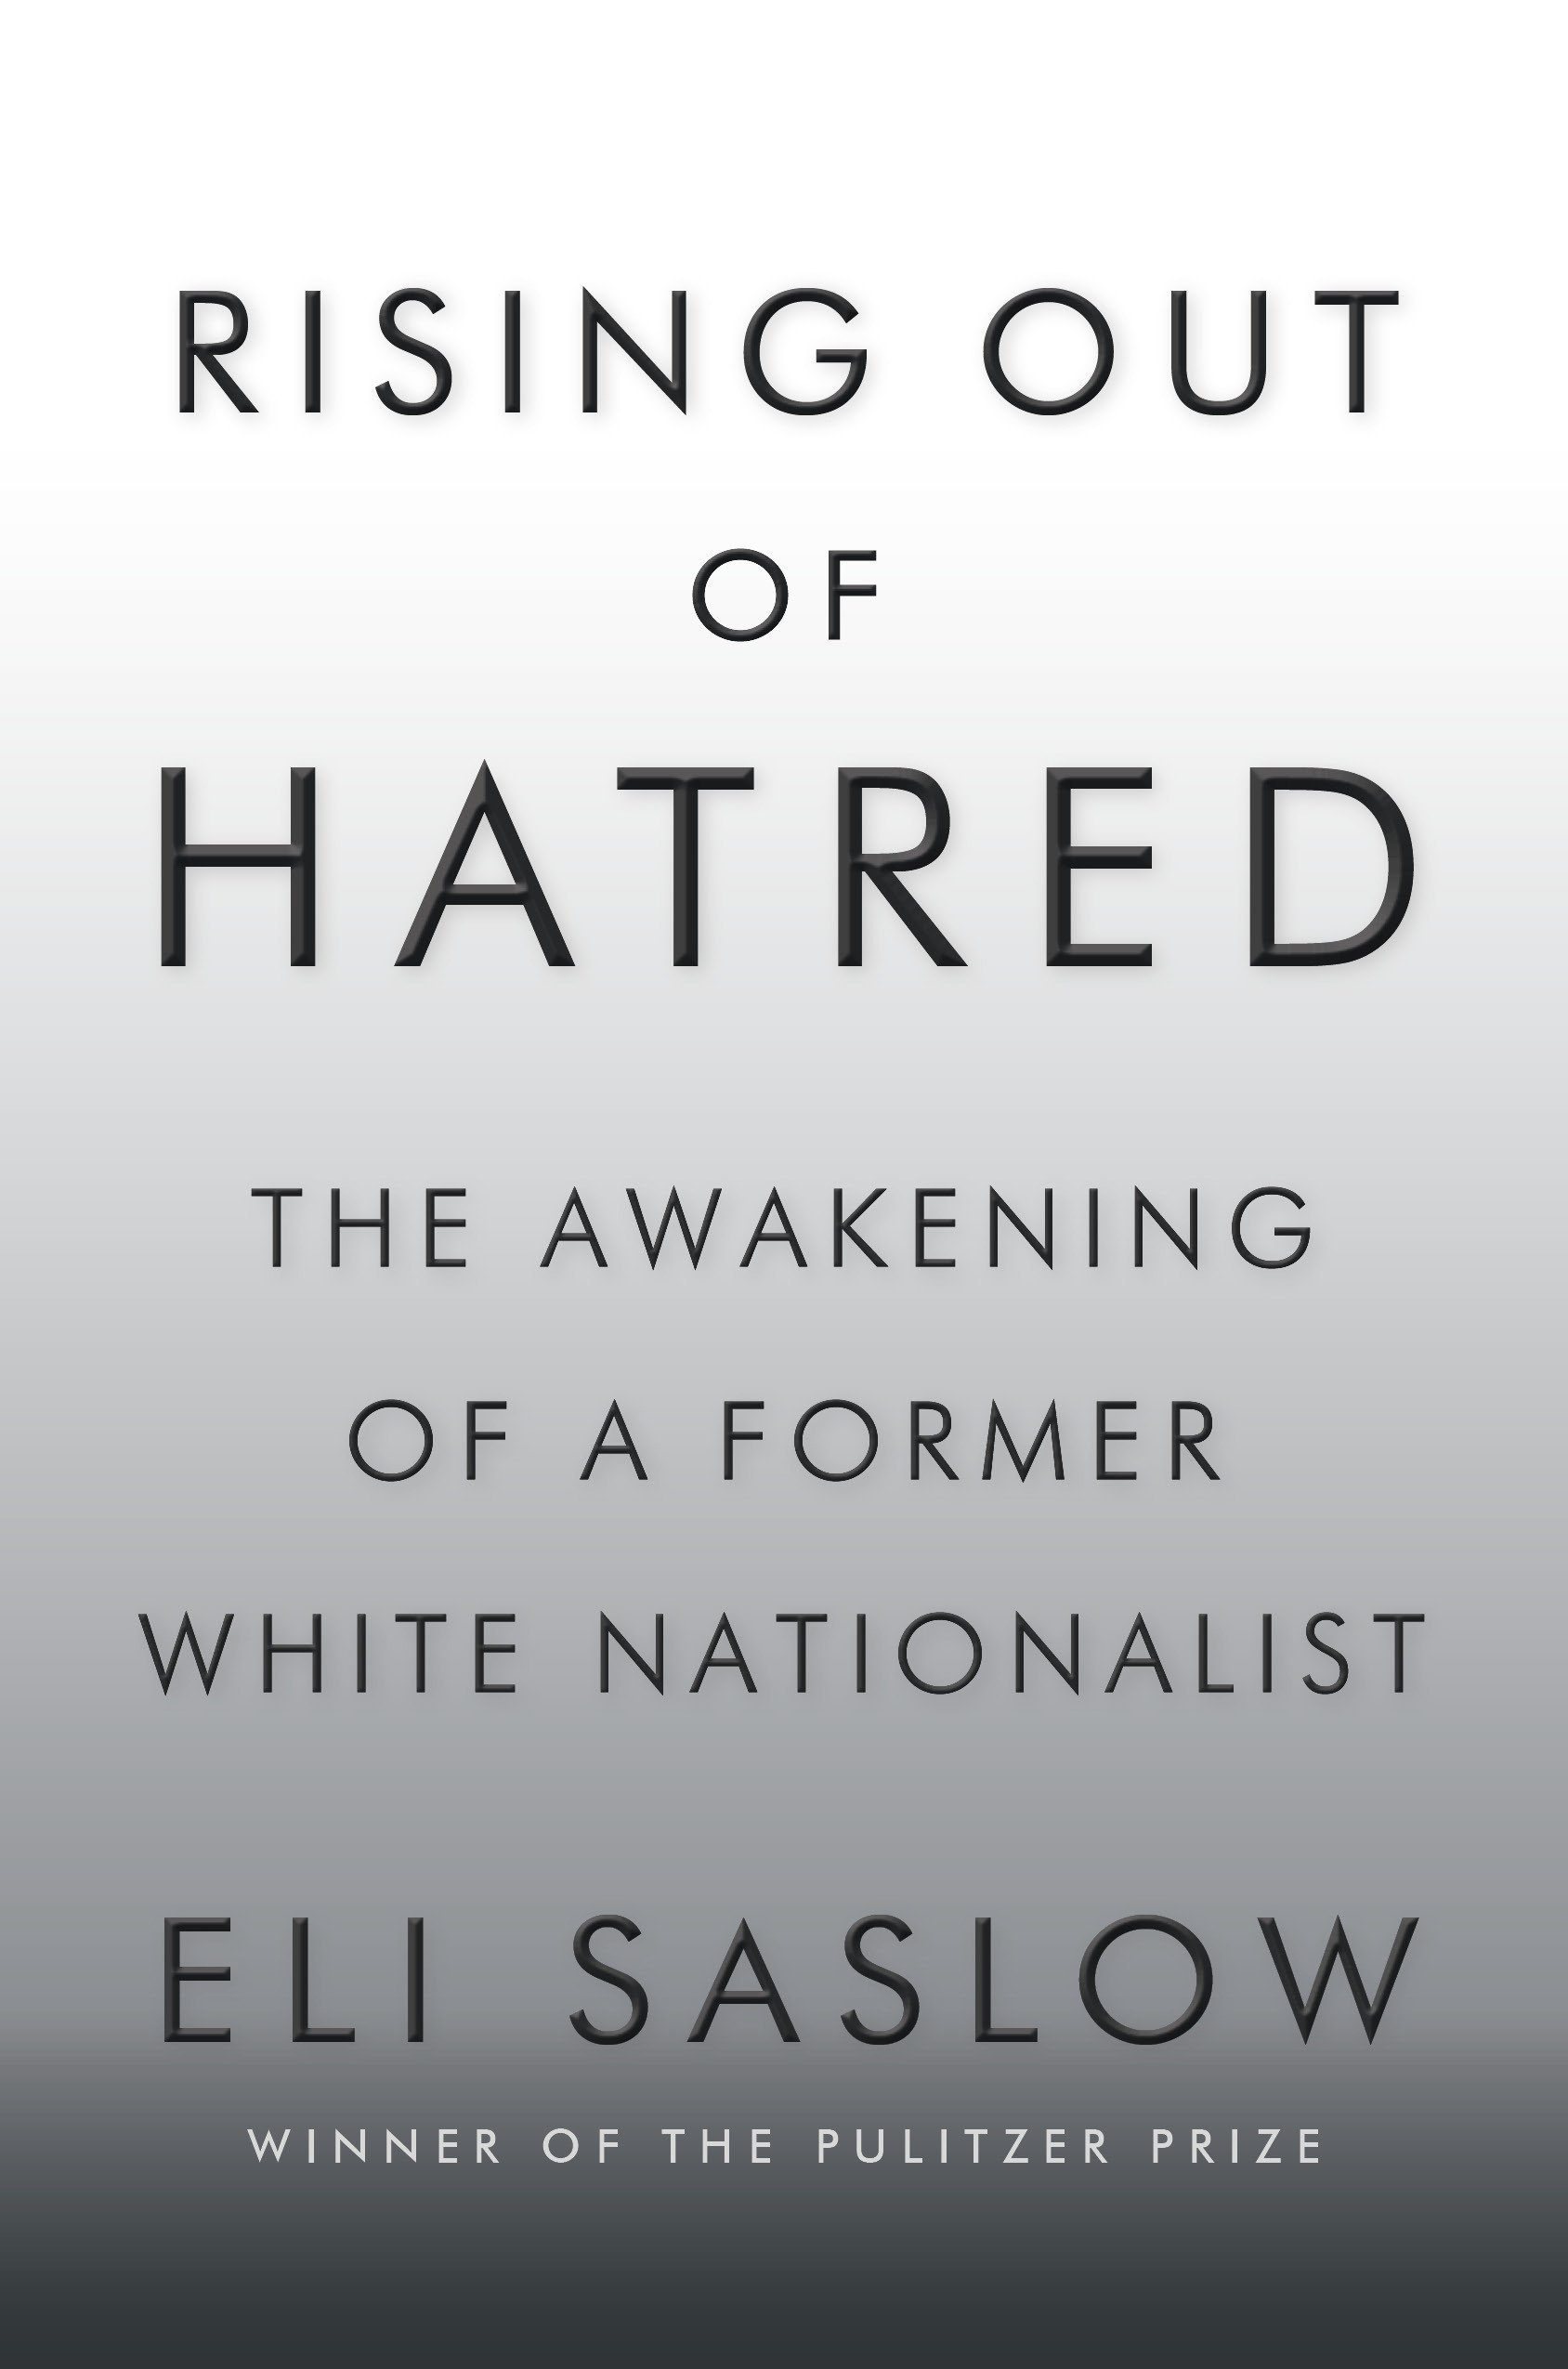 Rising Out of Hatred book cover